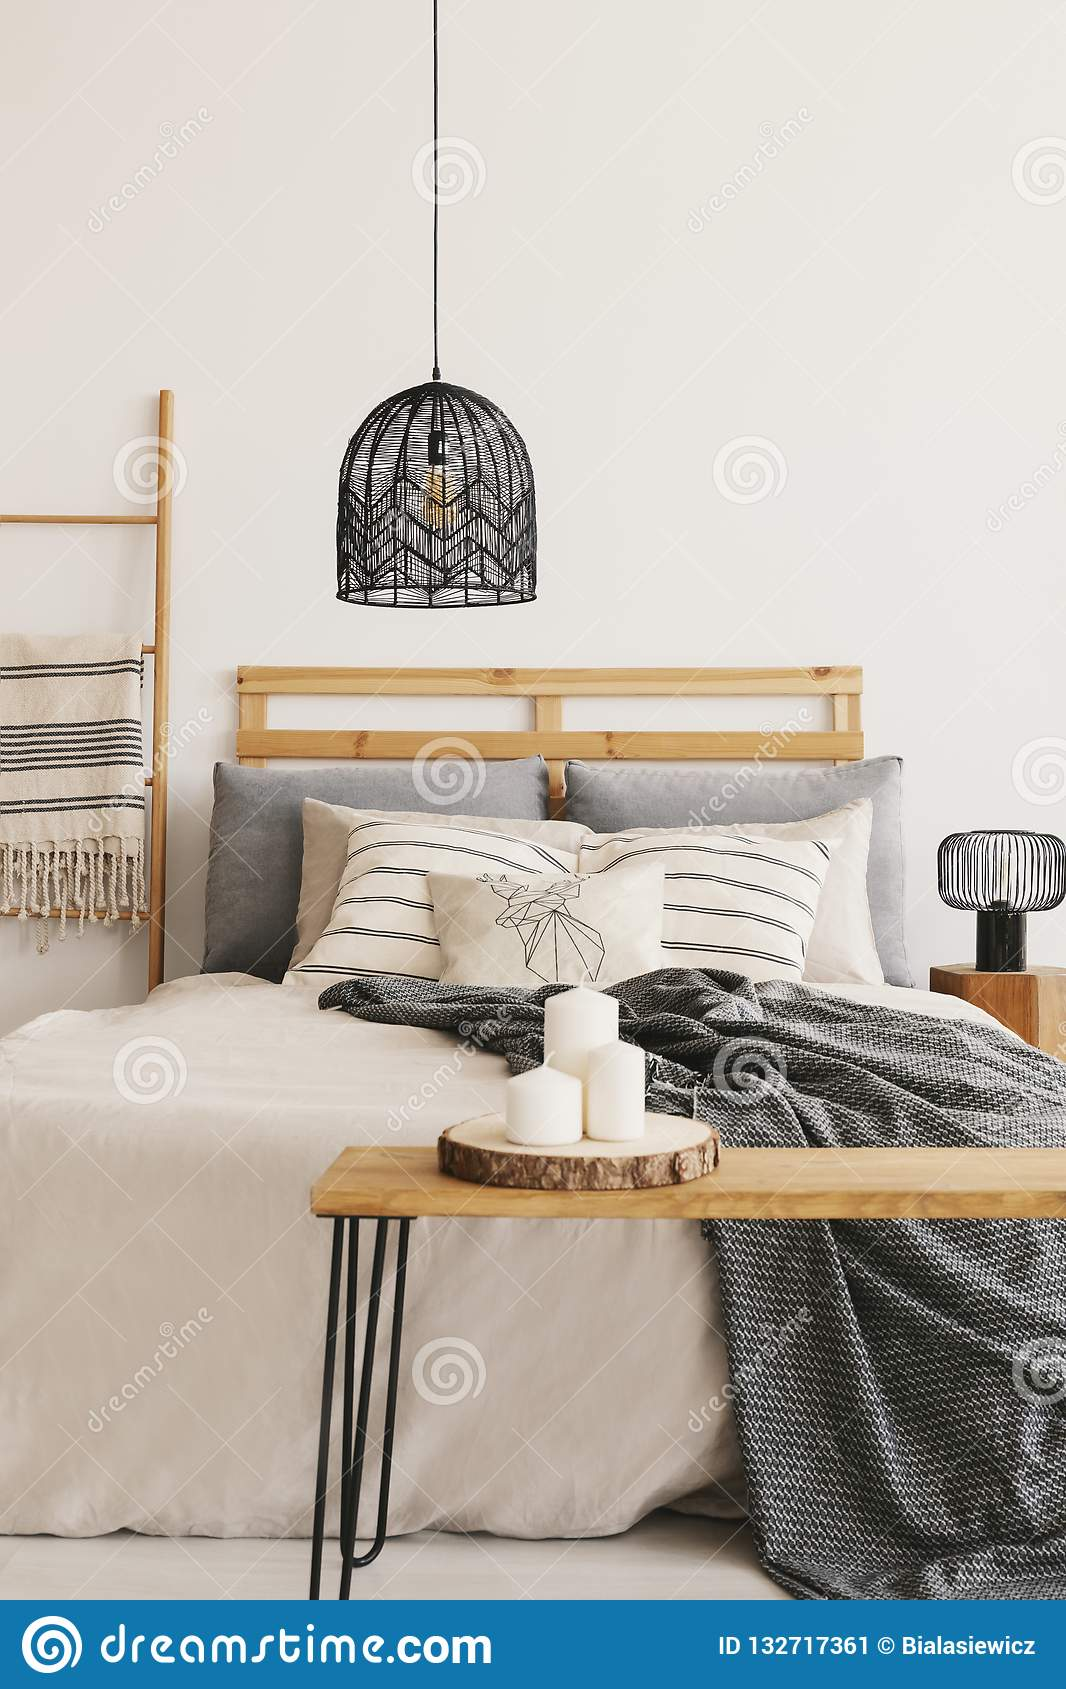 Black chandelier above king size bed with beige duvet, grey blanket and pillows, real photo with copy space on the empty